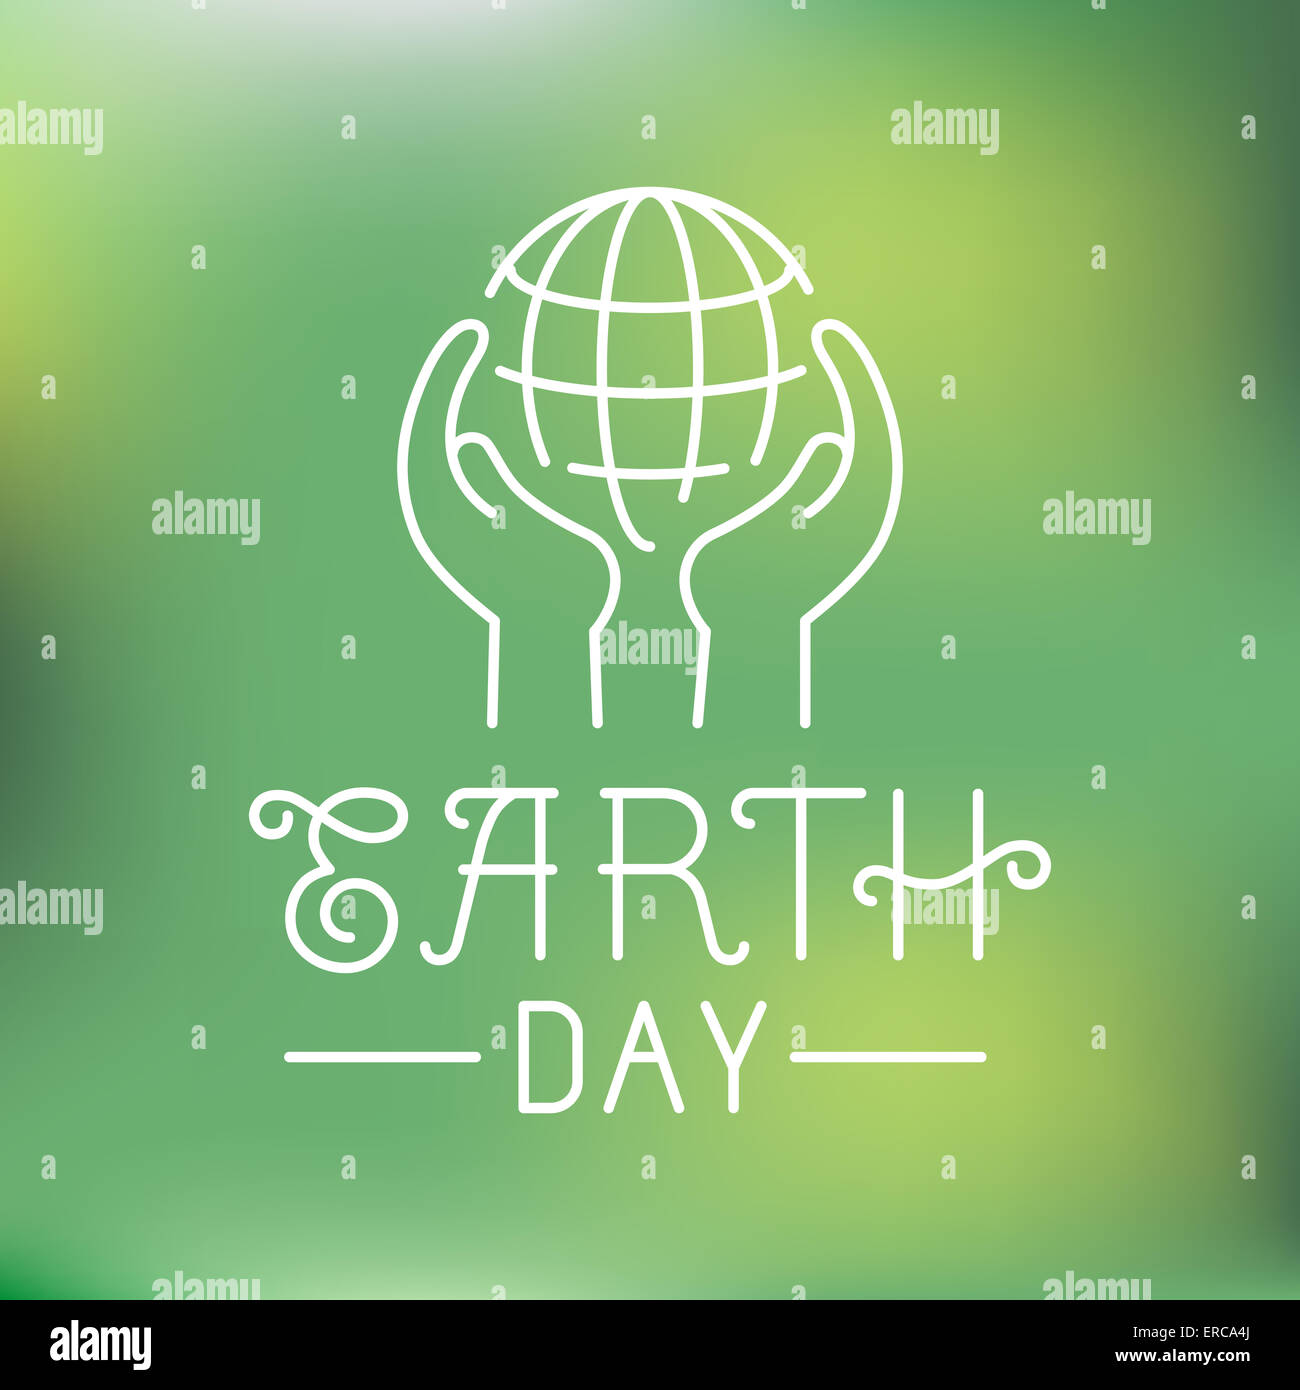 Earth day logo in linear style - ecology concept - hands protecting planet - Stock Image